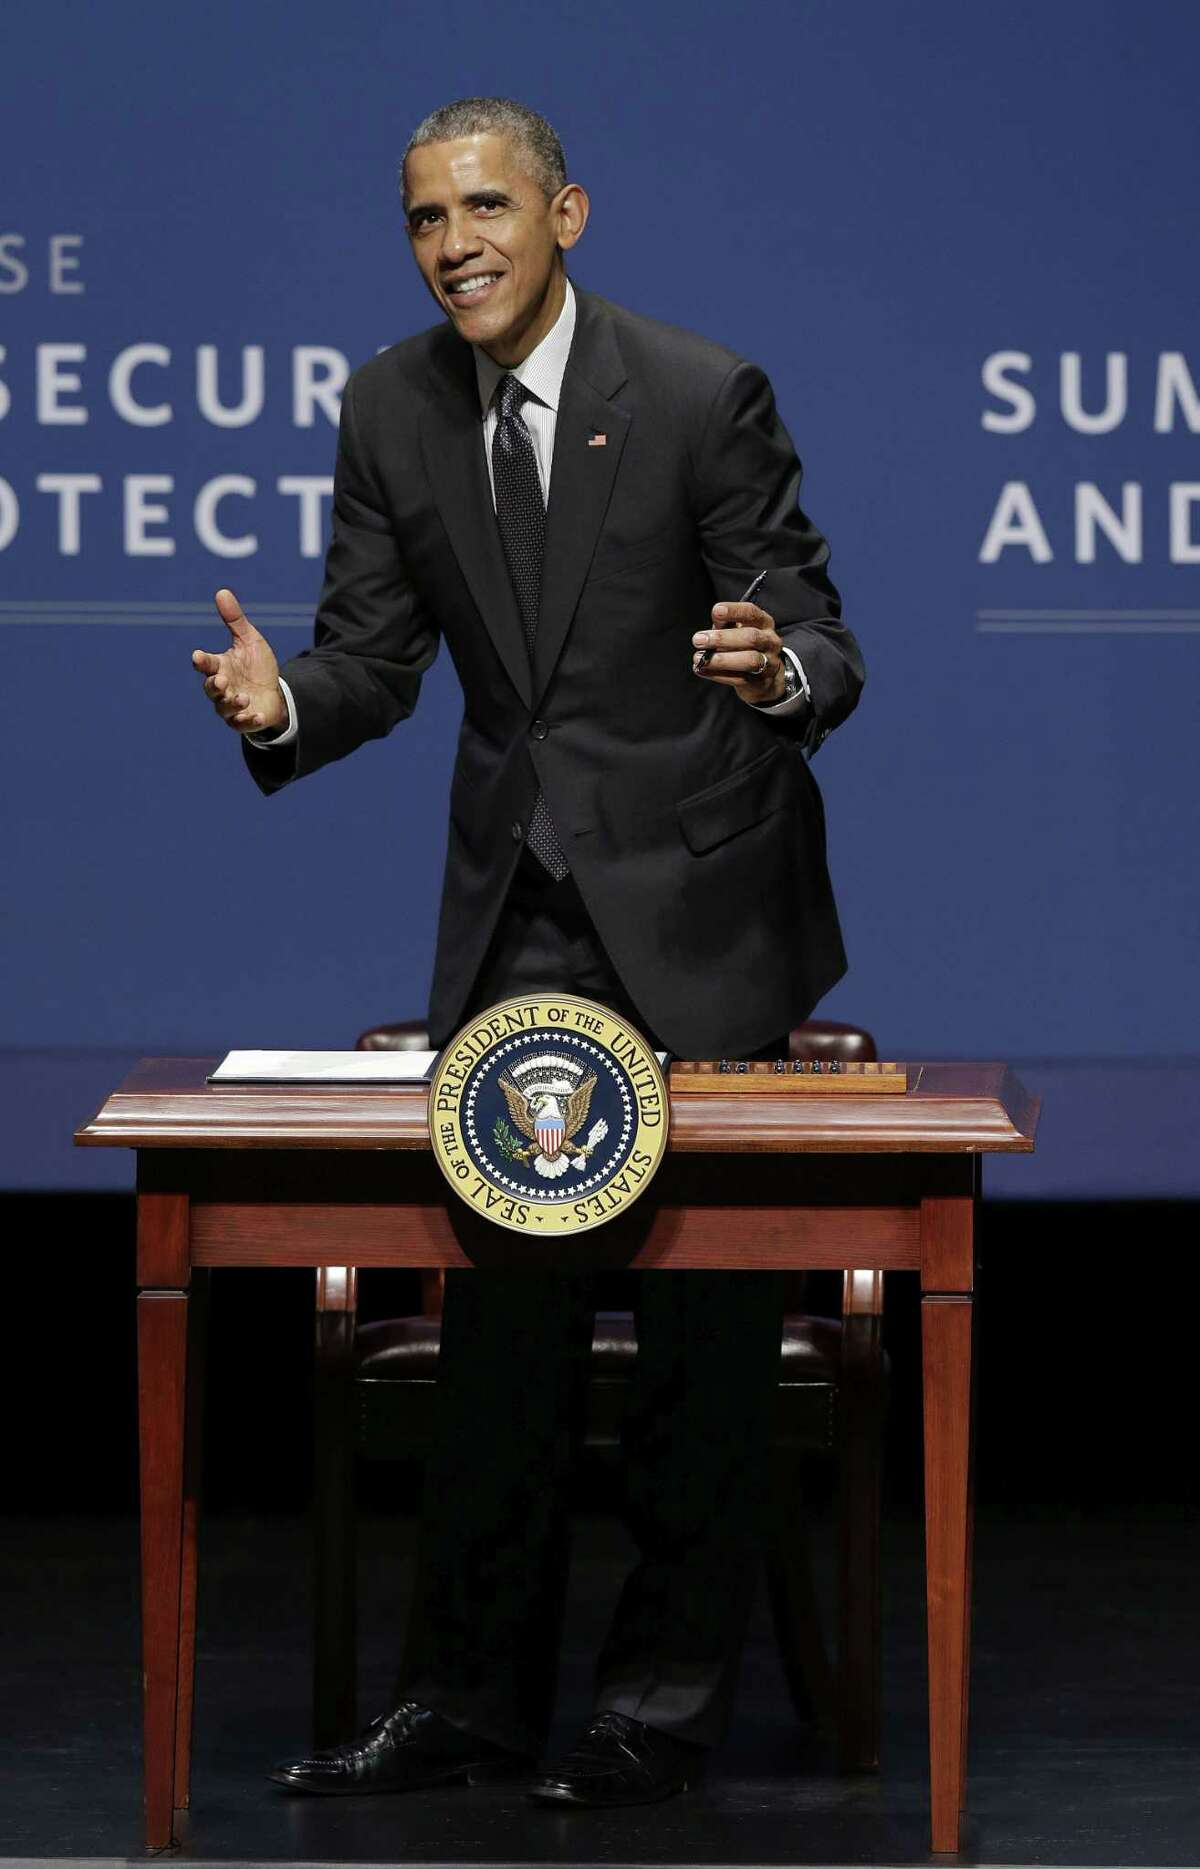 President Barack Obama smiles while signing an executive order after speaking at the White House Summit on Cybersecurity and Consumer Protection in Stanford, Calif., Friday, Feb. 13, 2015. (AP Photo/Jeff Chiu)